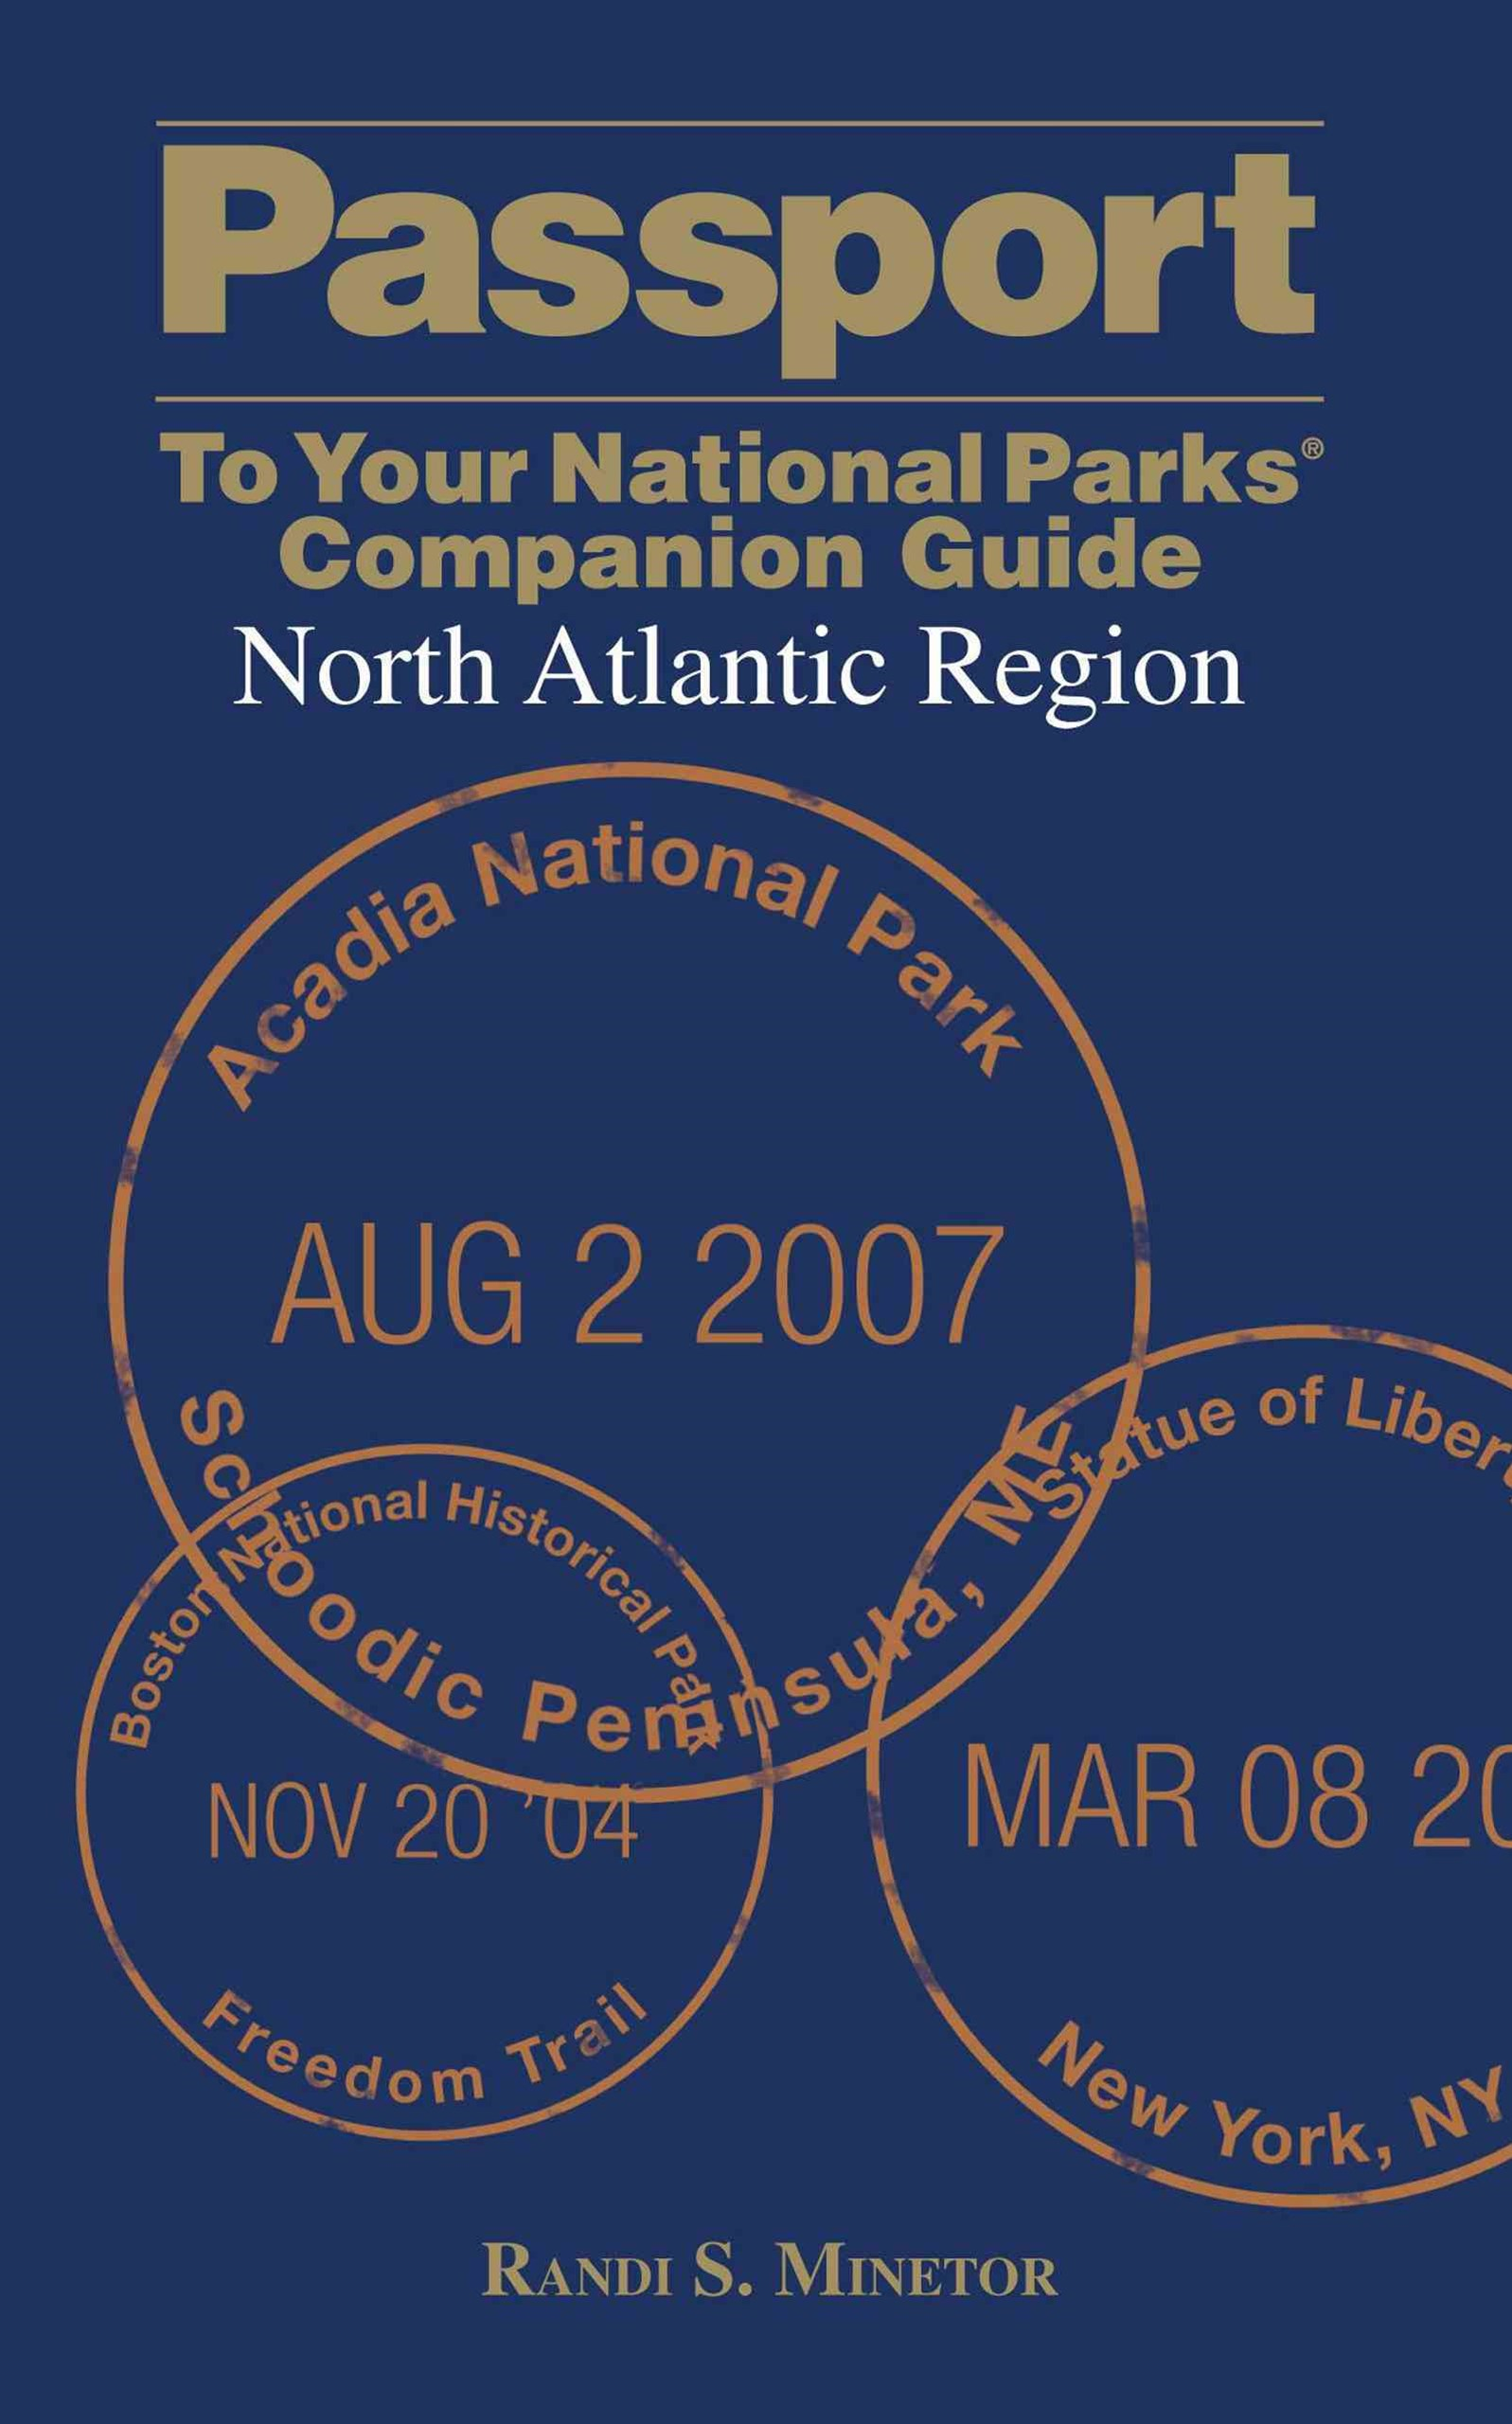 Passport to Your National Parks Companion Guide: North Atlantic Region